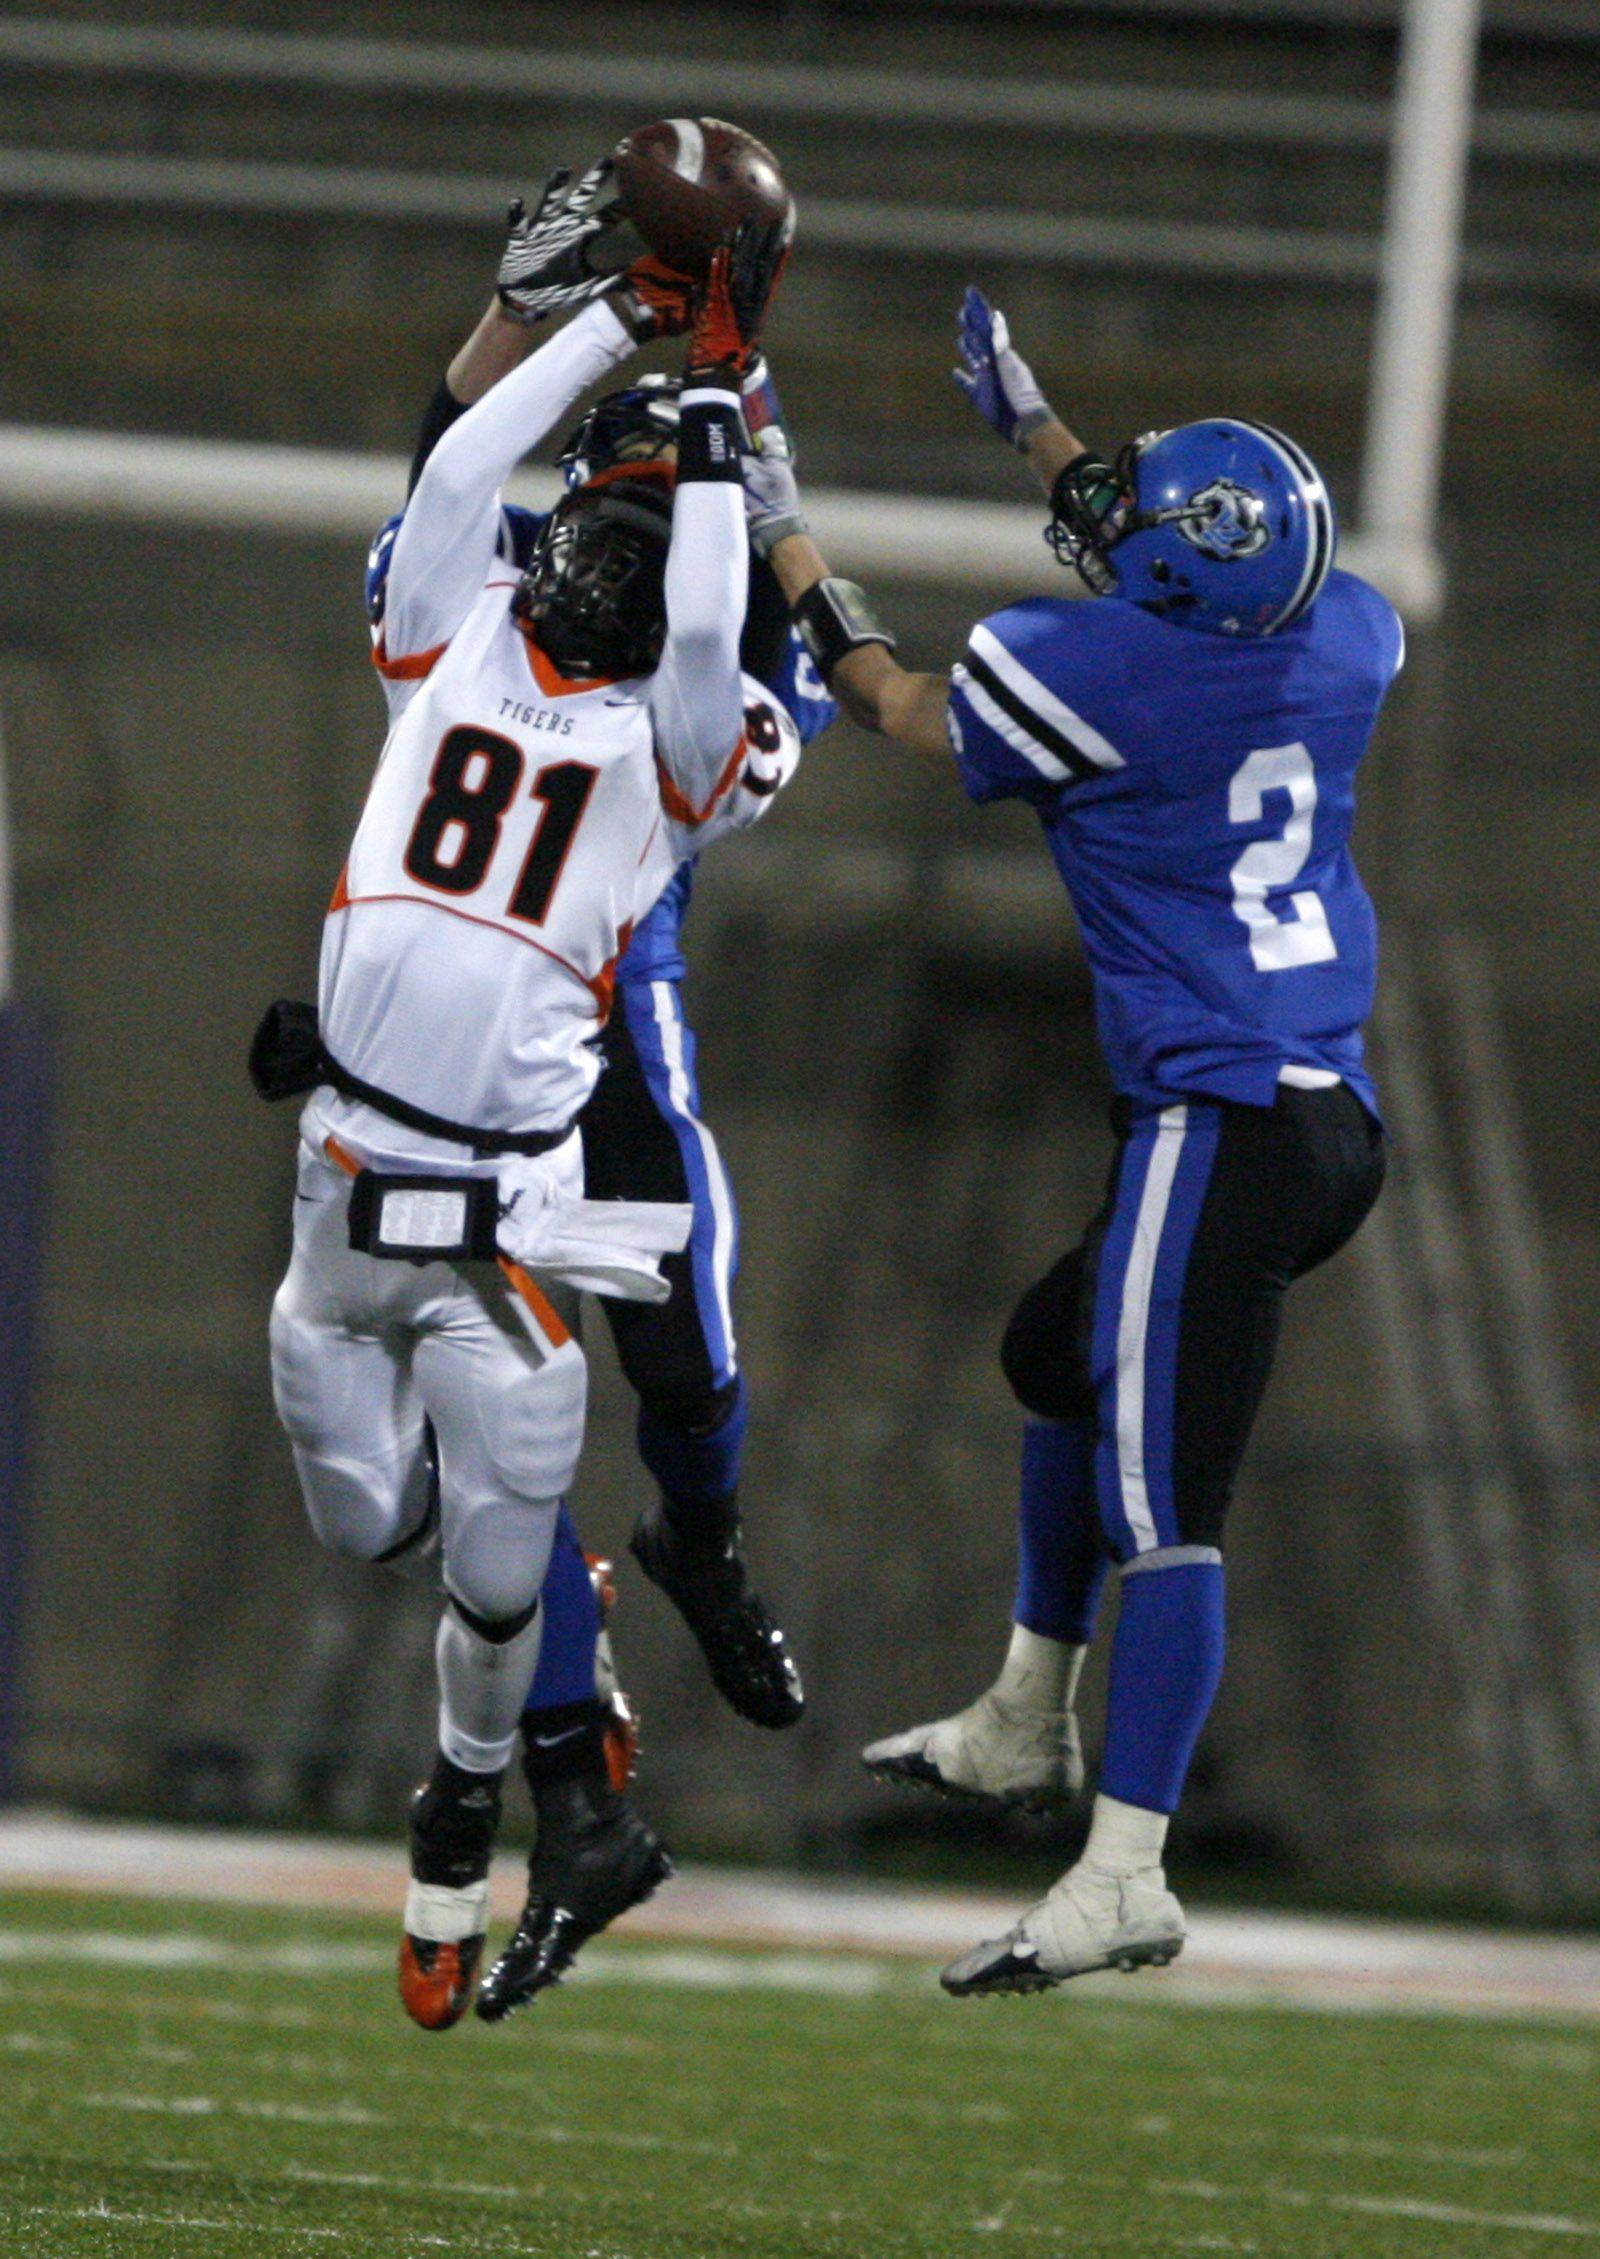 Wheaton Warrenville South's Titus Davis and Lake Zurich's Mike Shield leap for an incomplete pass in the 7A state title game in Champaign on Saturday, November 27.